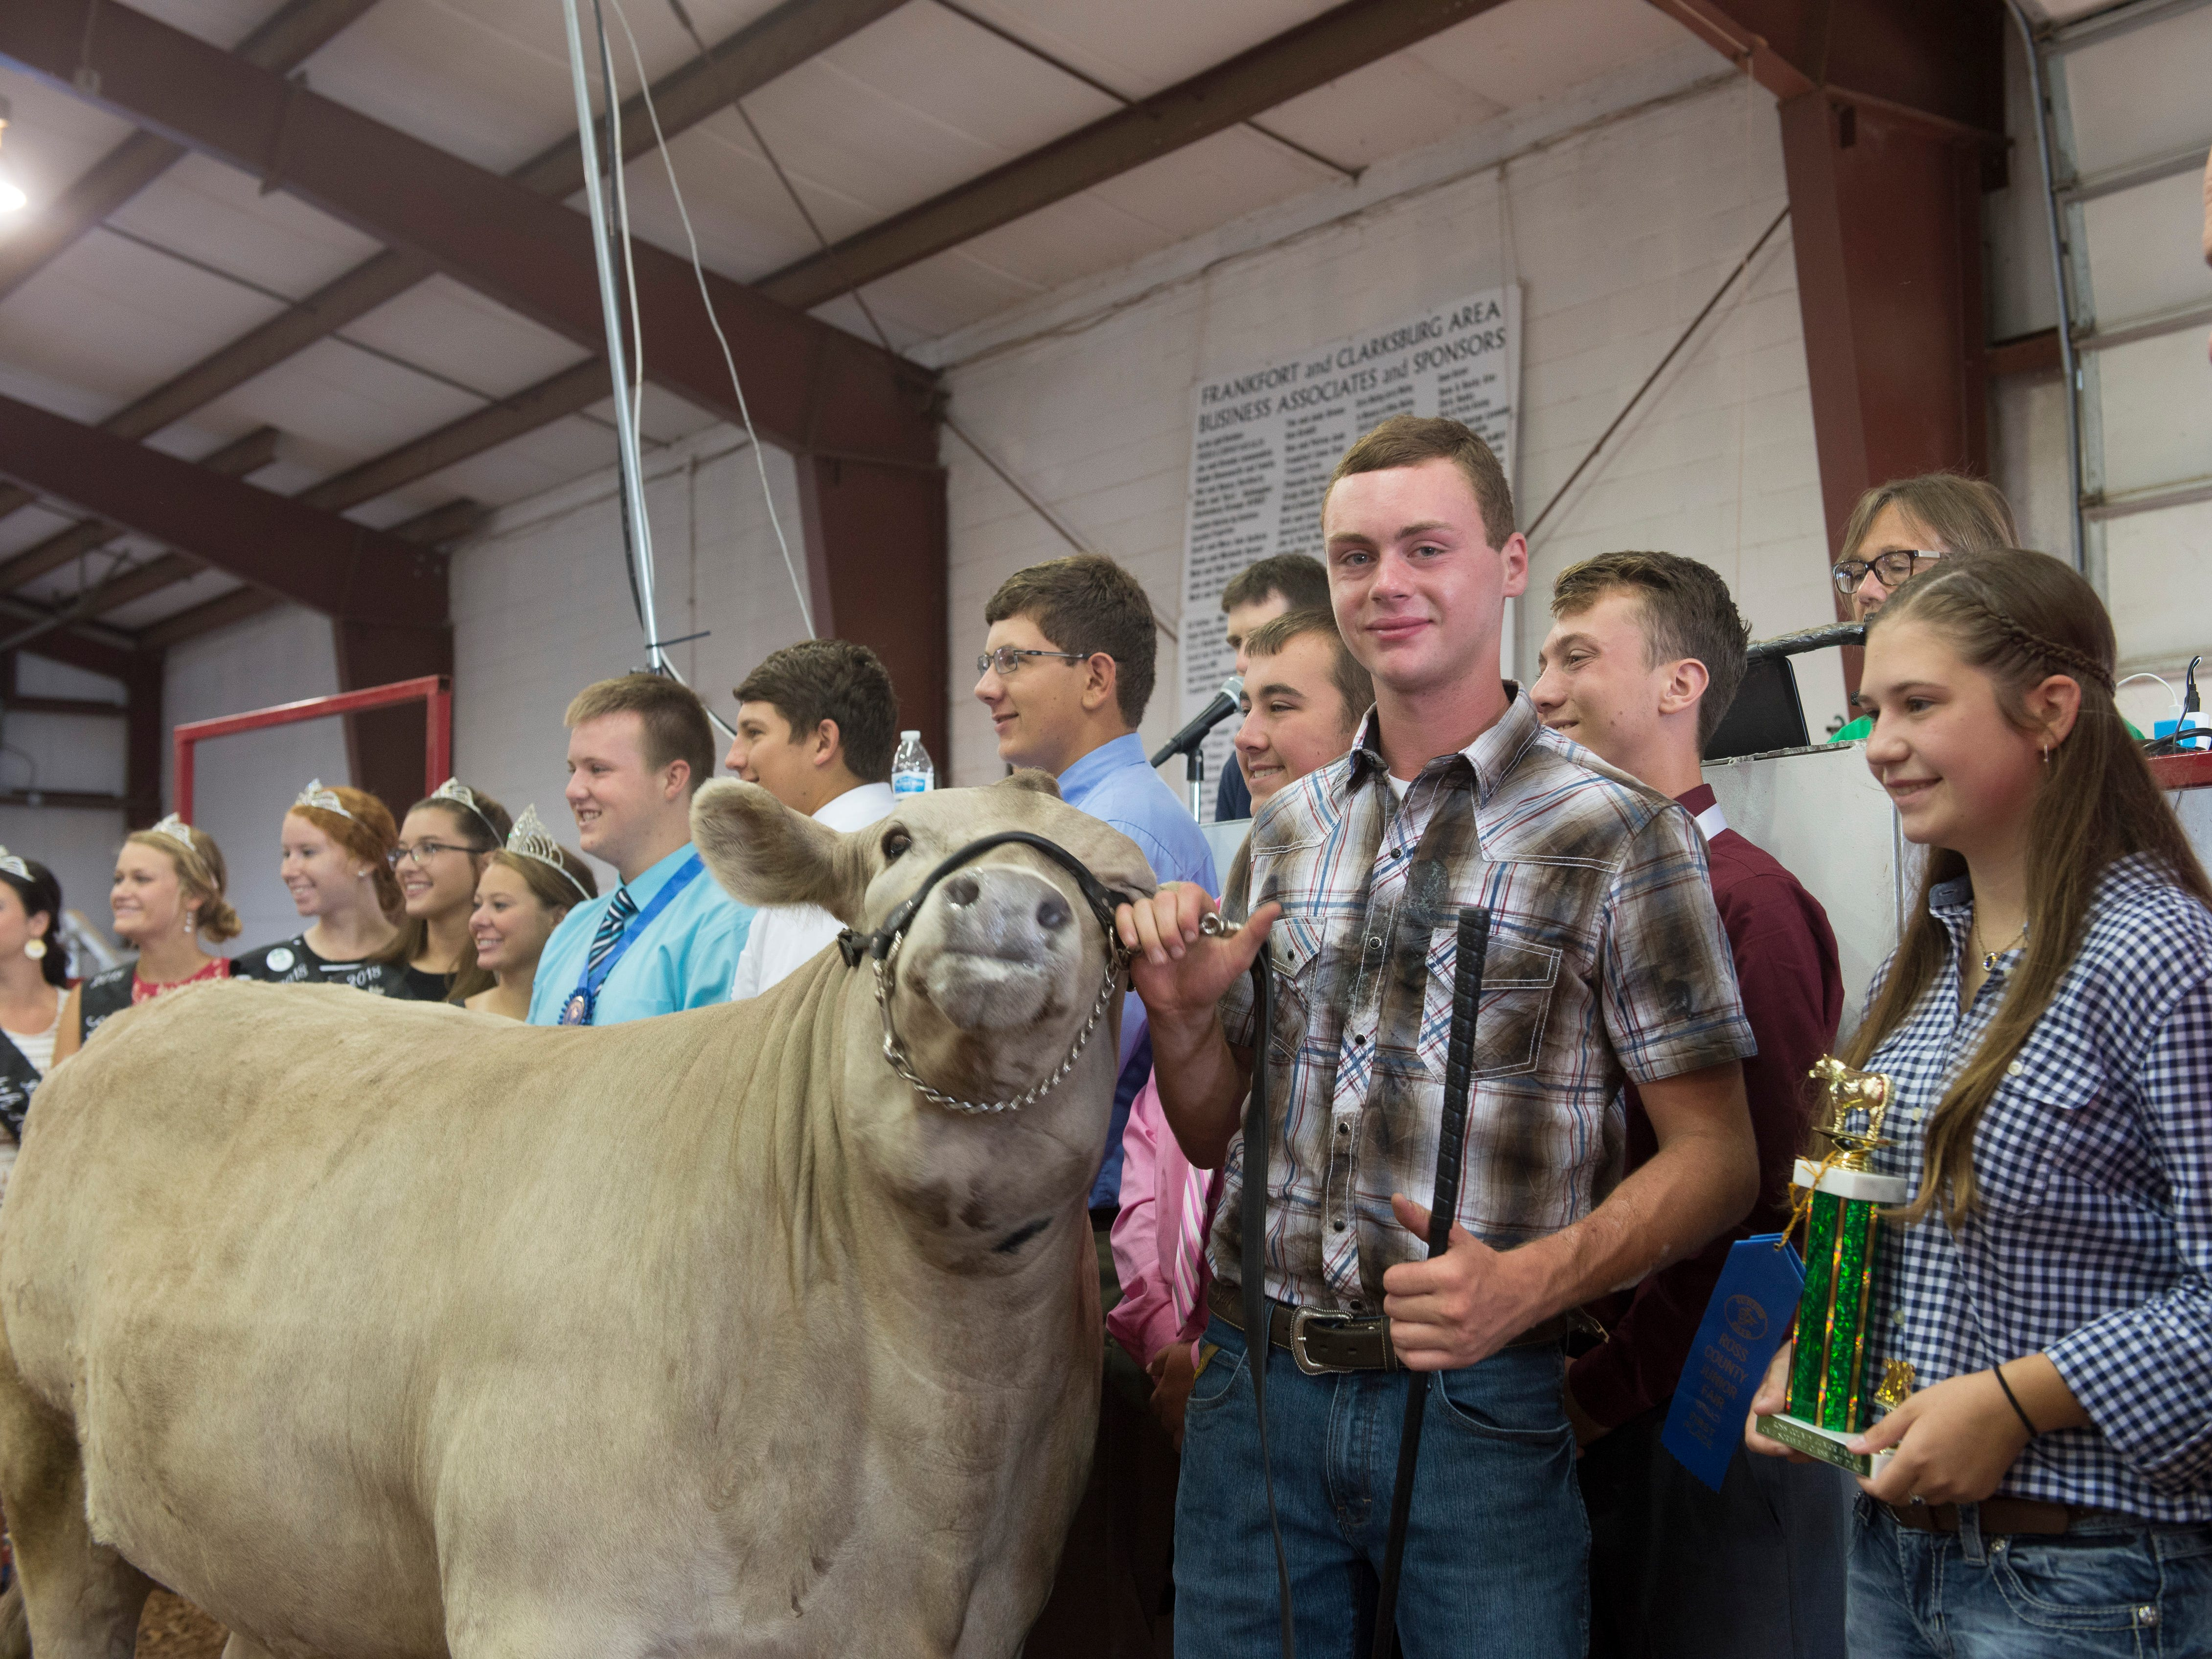 Brayden Thompson poses with his Champion Scramble Calf after auction during the Jr. Fair Market Steer, Poultry and Rabbit Sale at the Ross County Fair on August 11, 2018, in Chillicothe, Ohio.